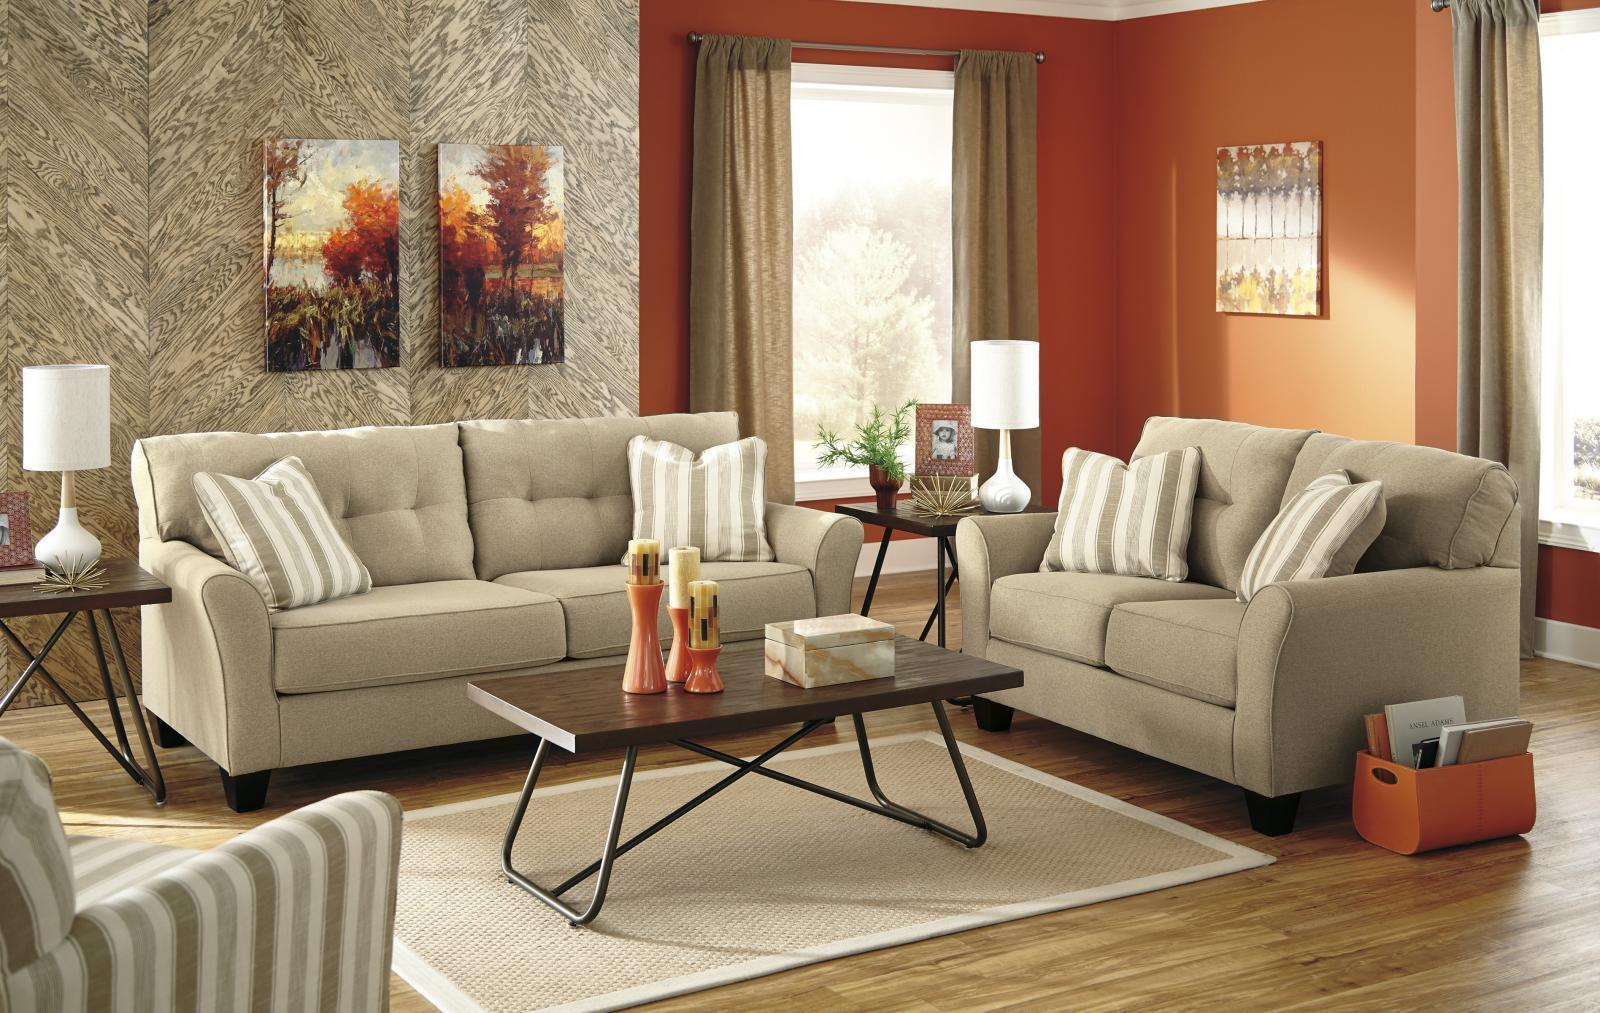 Ashley Laryn Living Room Set 3pcs in Khaki Upholstery Fabric Contemporary Style